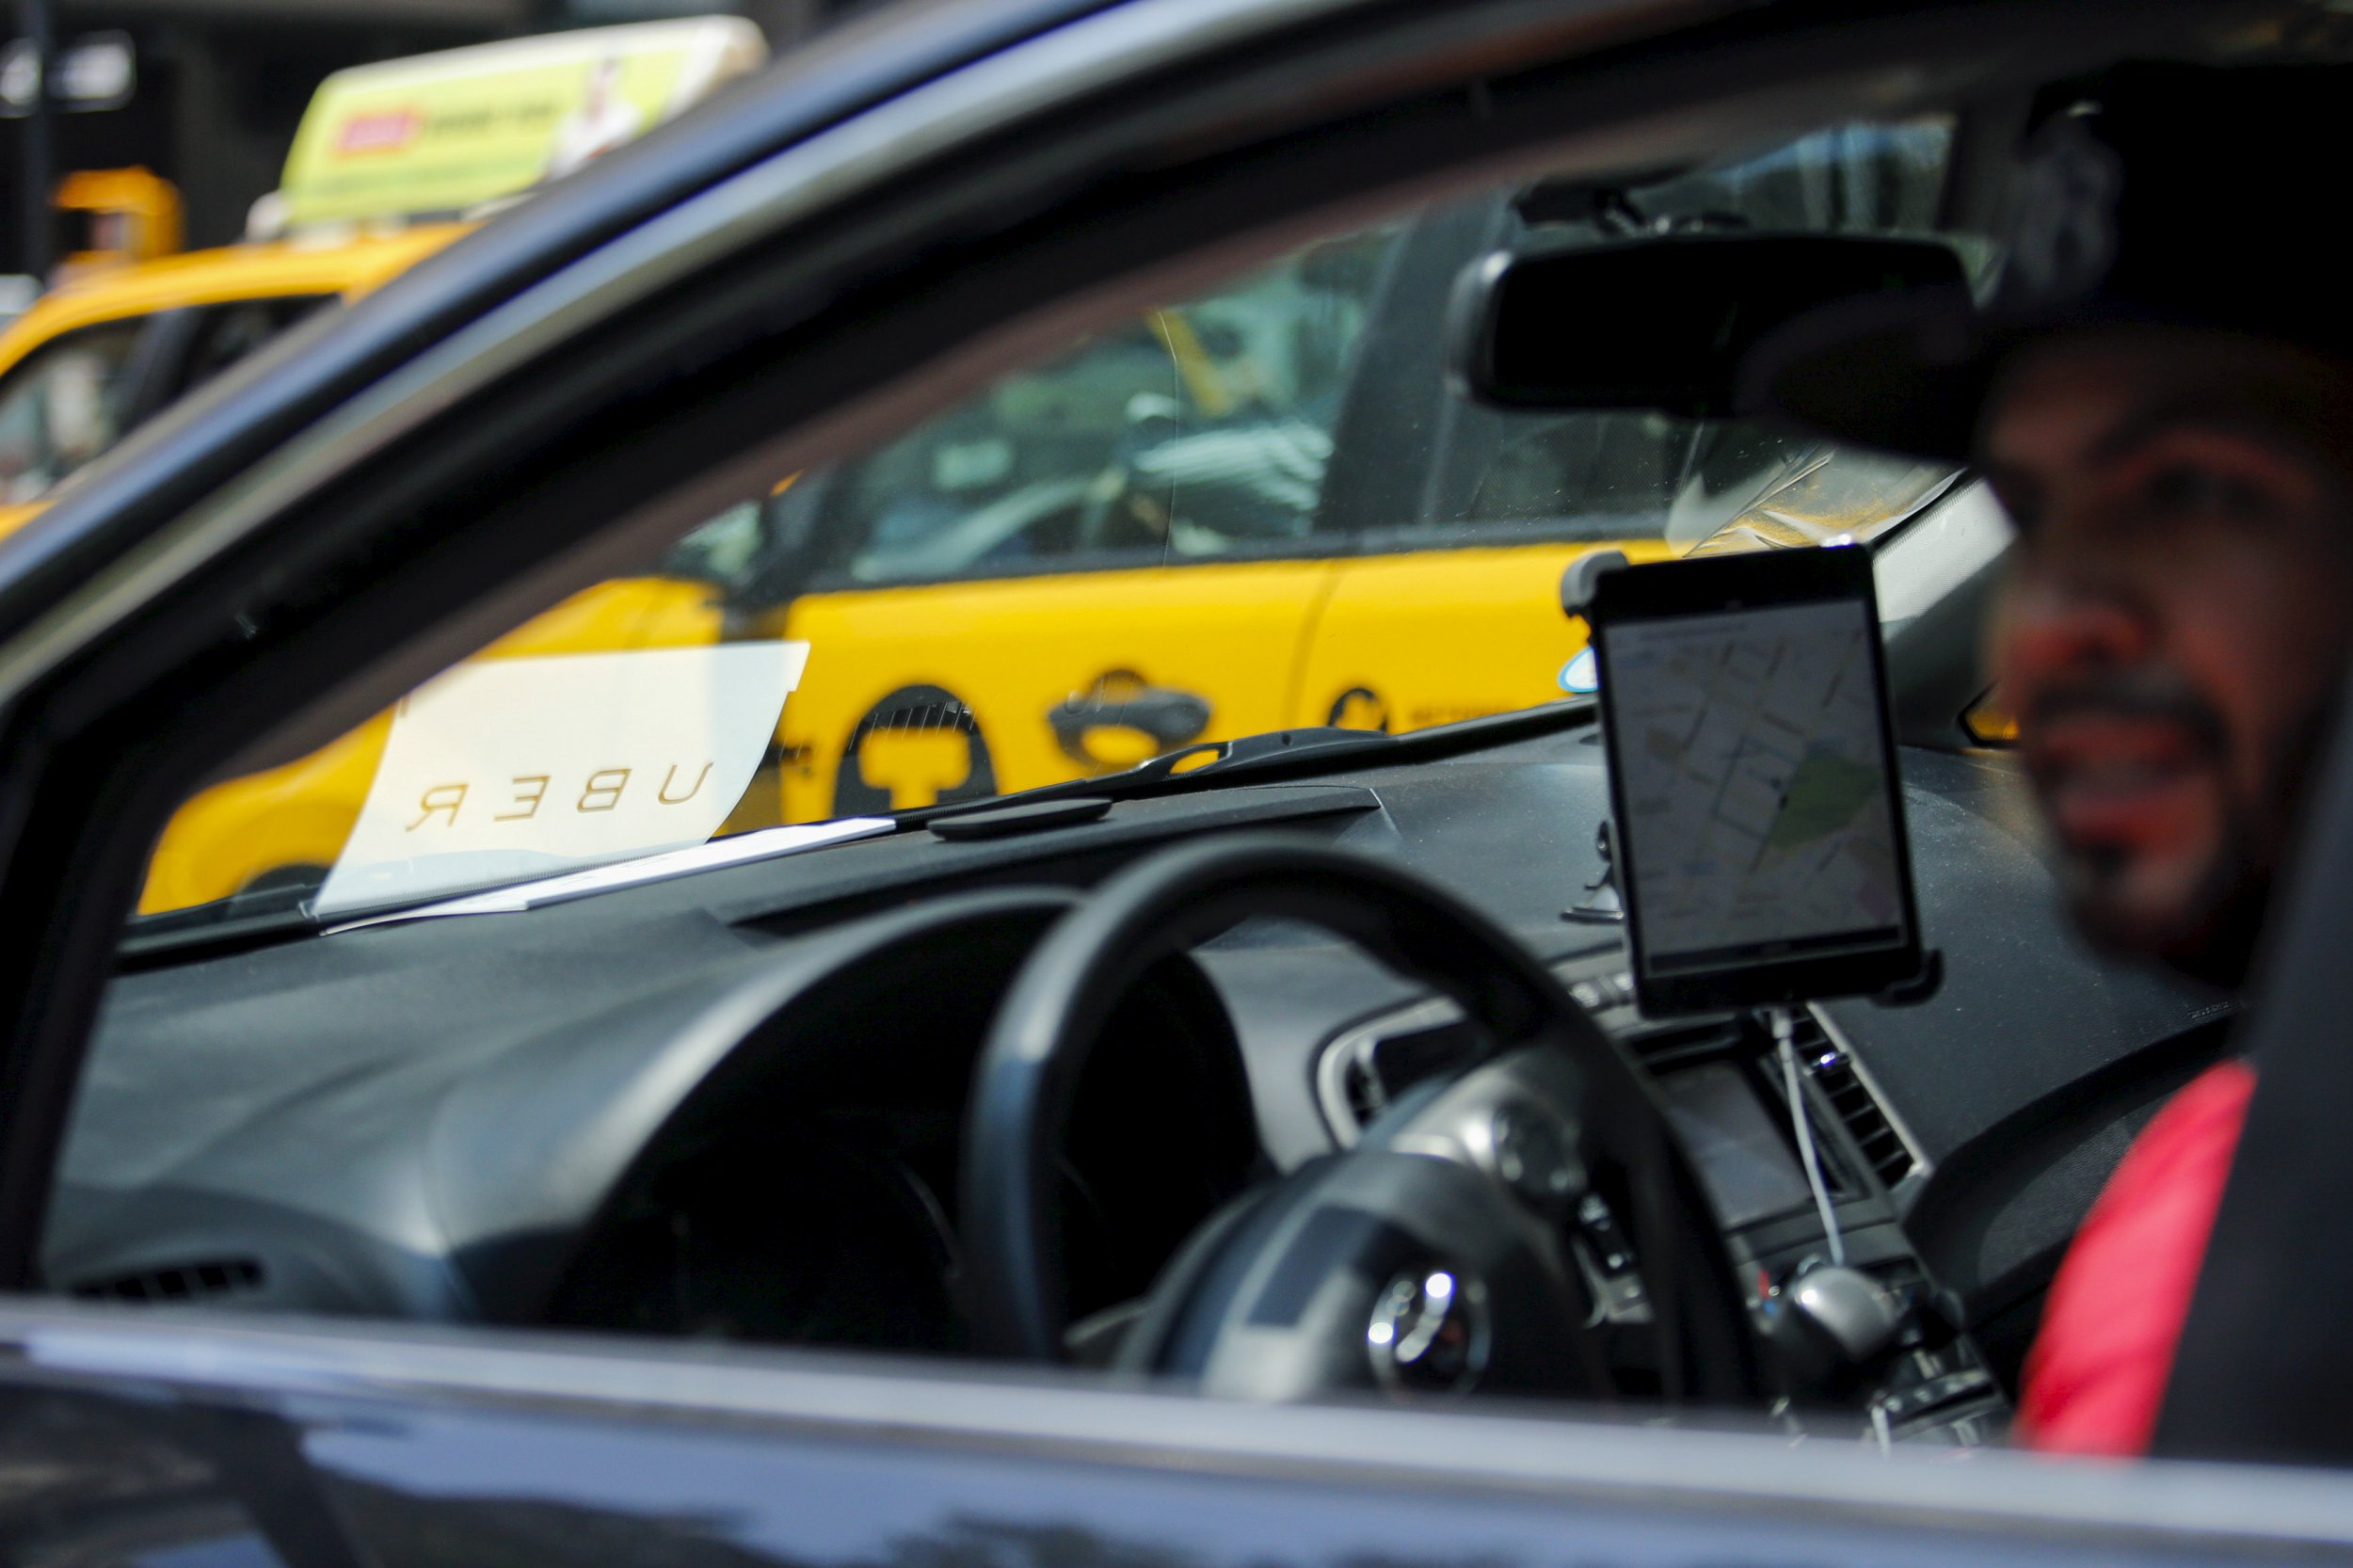 Uber Or Lyft >> The Big Idea Behind the Battle Between Uber and Yellow Cabs